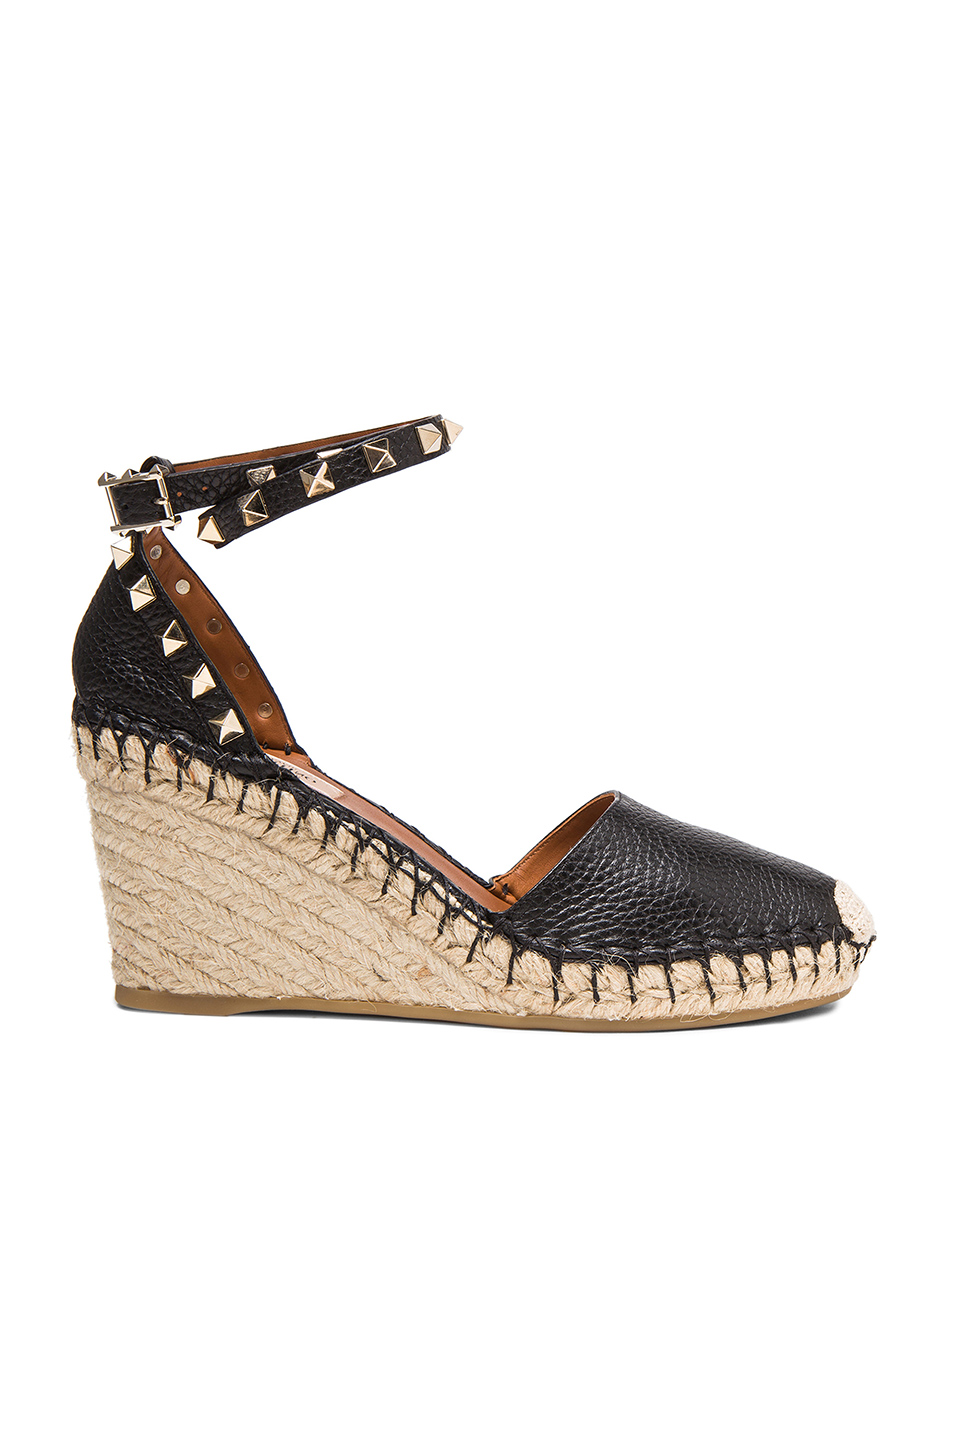 00f9a86638b Rockstud Double Espadrille Leather Wedges, Valentino